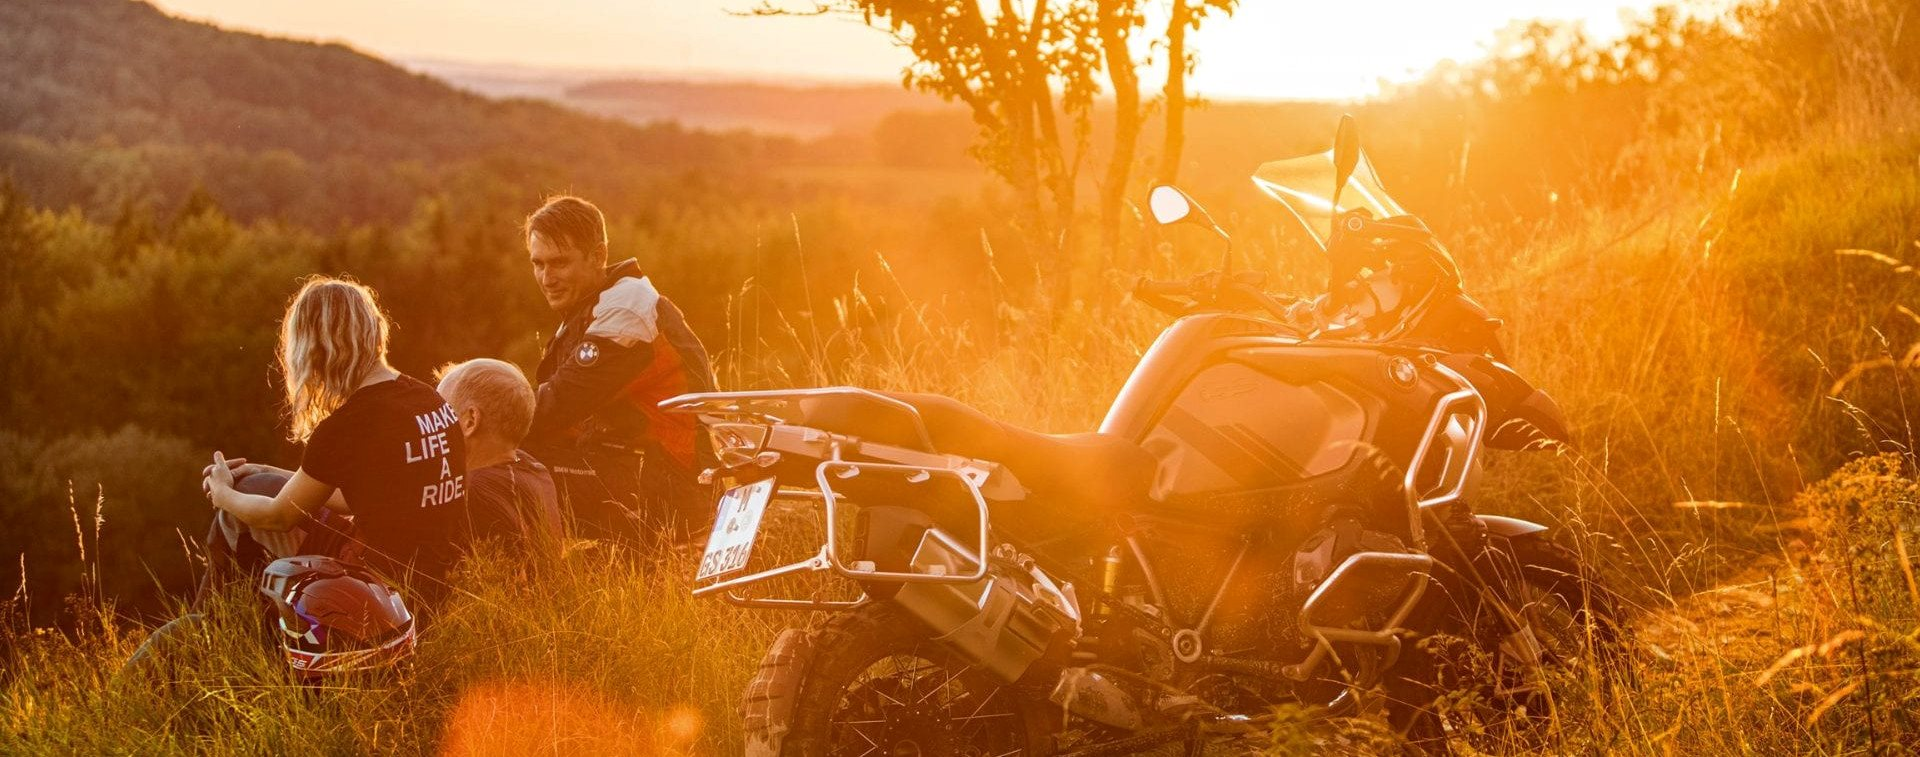 FIND NEW MOTORCYCLES AVAILABLE FOR IMMEDIATE DELIVERY